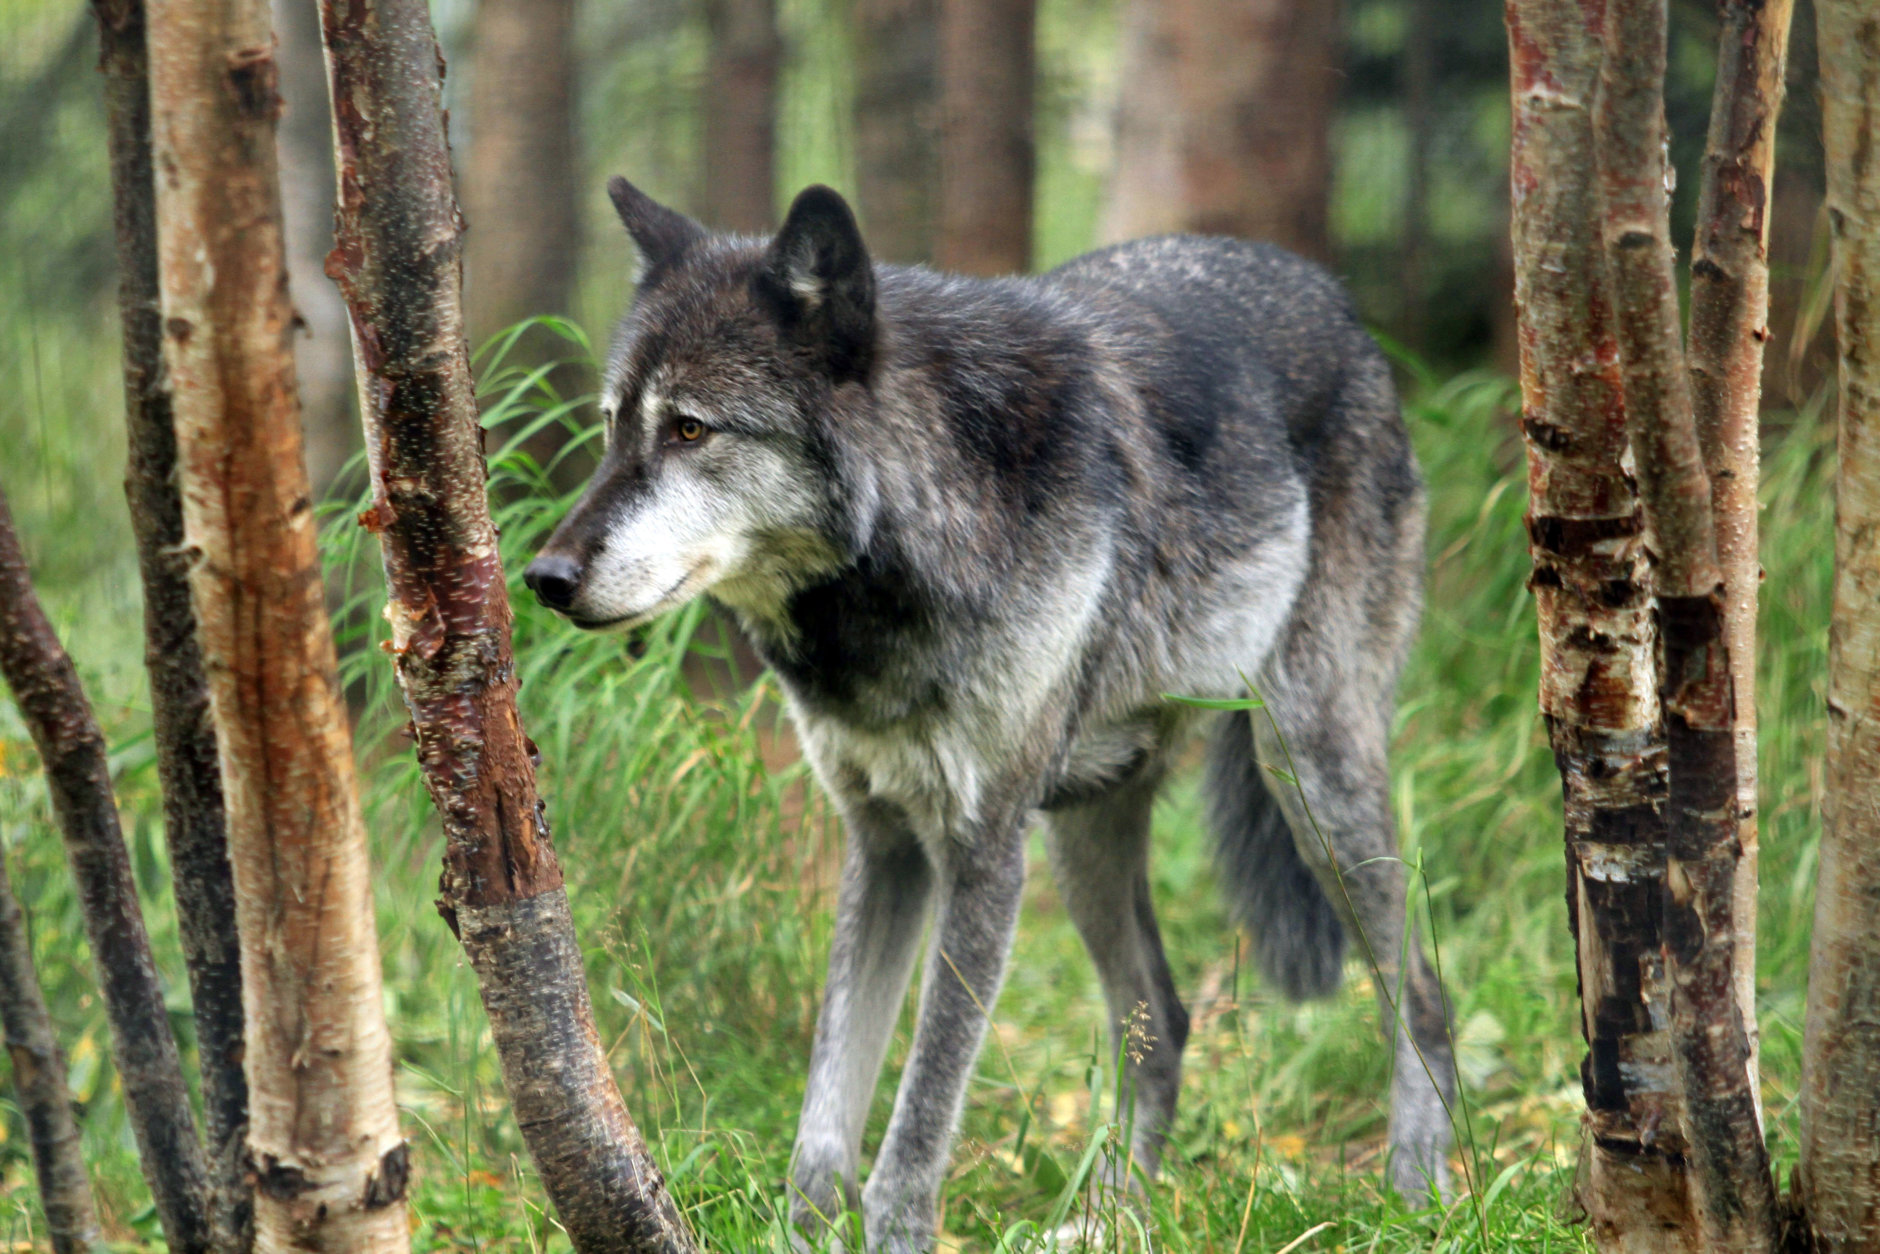 """Denali, a male gray wolf, walks between trees at the Alaska Zoo on Wednesday, Sept. 5, 2012, in Anchorage, Alaska. The 6-year-old wolf  is one of two candidates for zoo """"president"""" in a fundraiser that matches the timing of the U.S. presidential race. He's running against Ahpun, a polar bear, and ballots are $1. (AP Photo/Dan Joling)"""